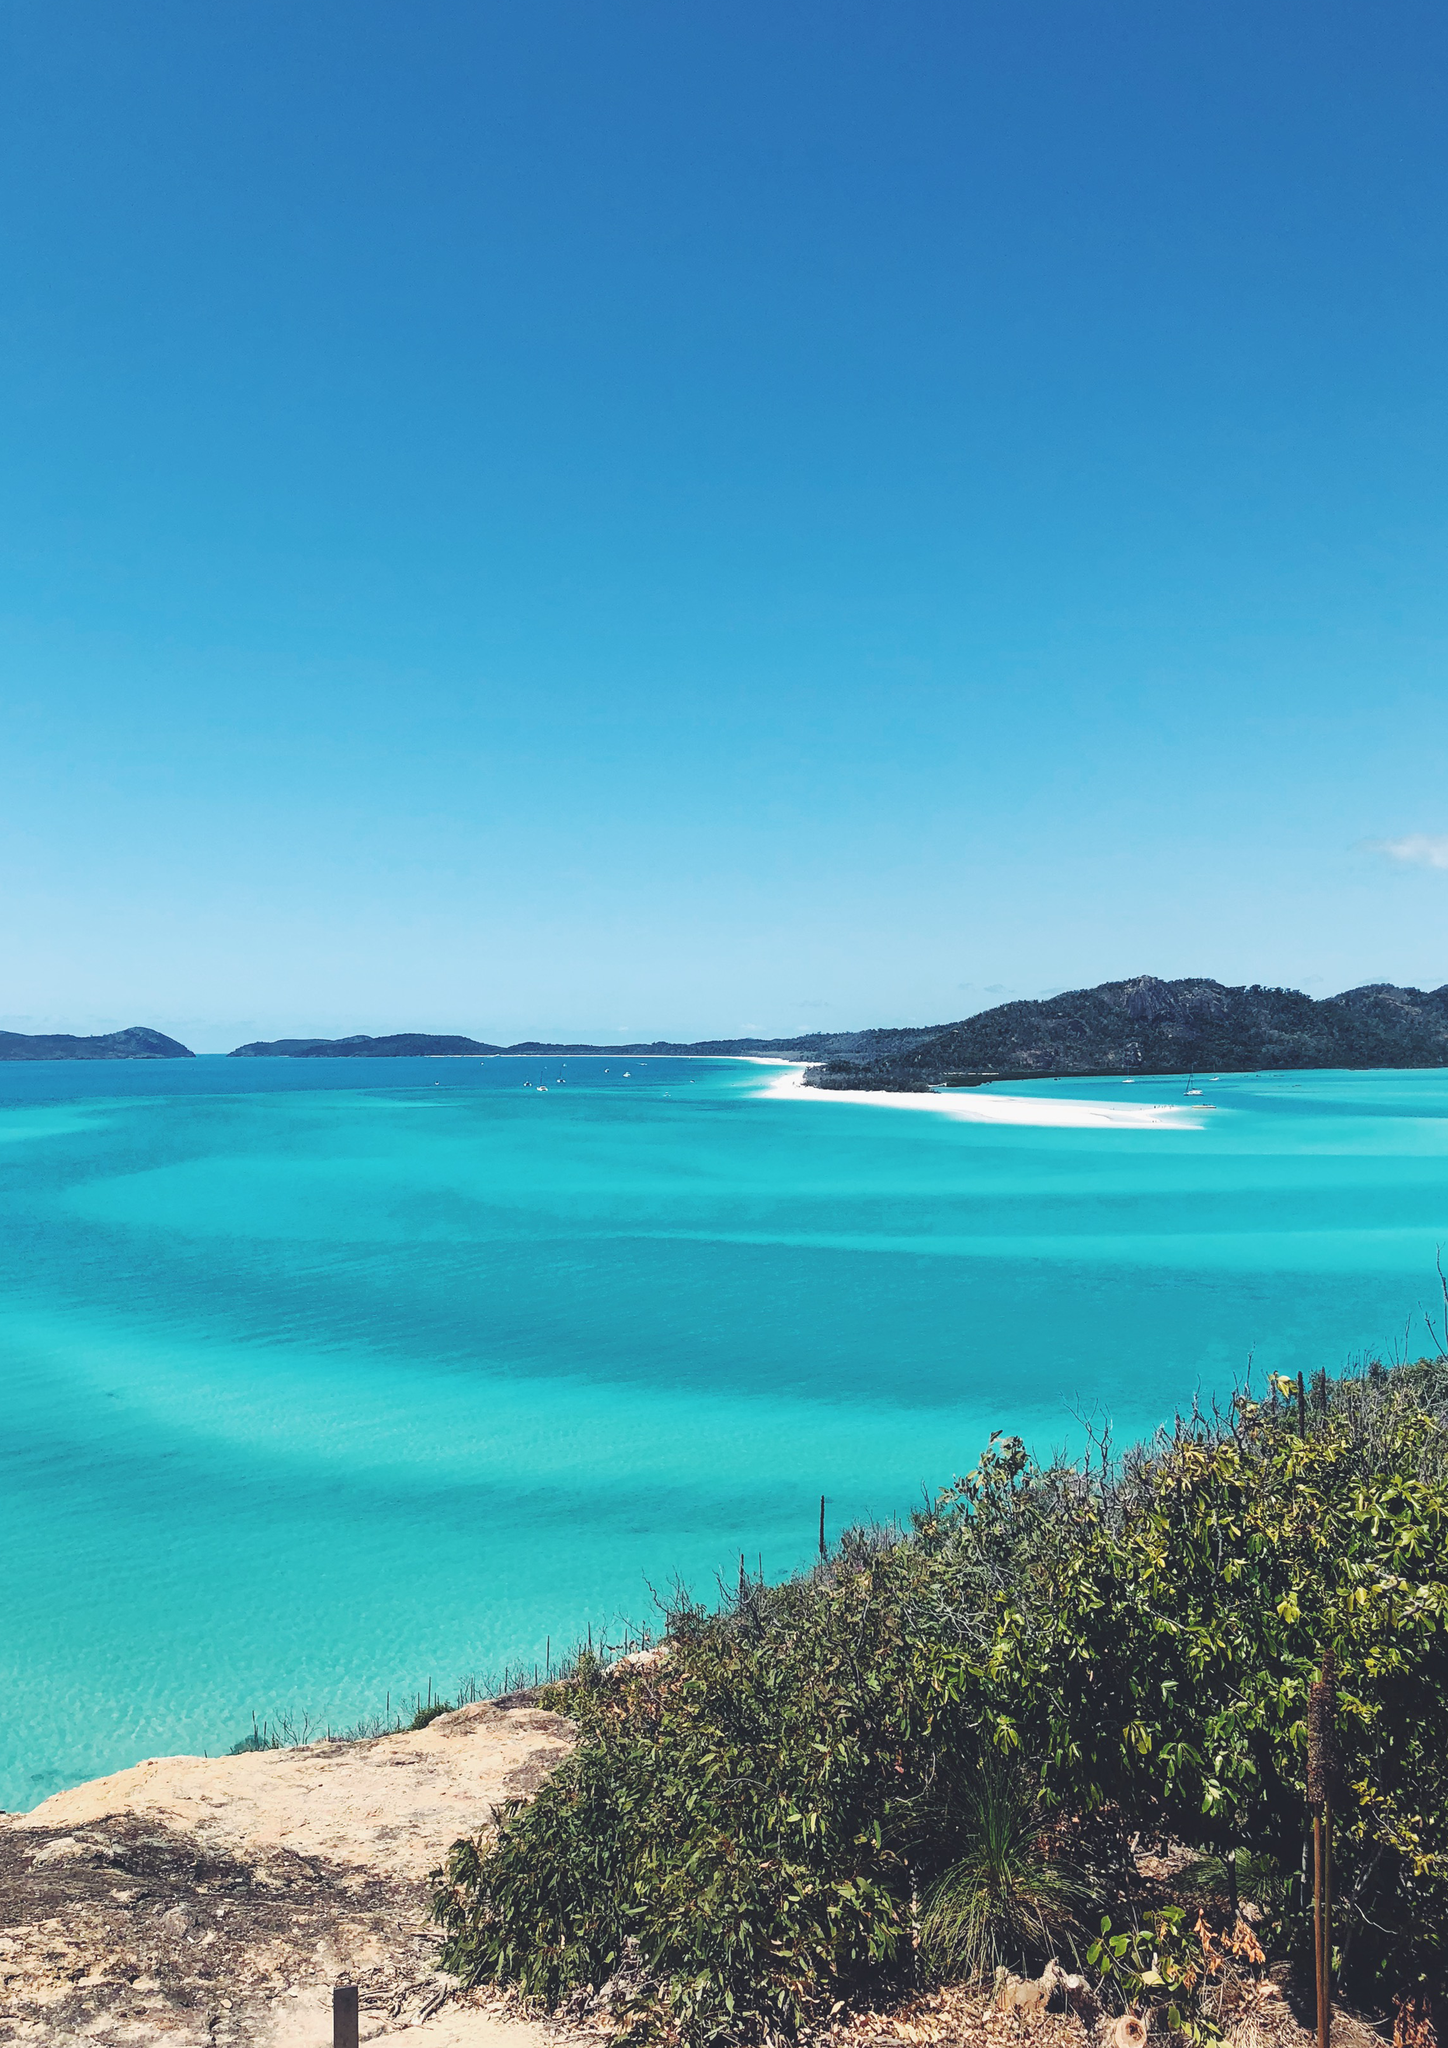 North Queensland Holiday Packages If You Have Been Trying To Think Of Your Next Holiday Question We